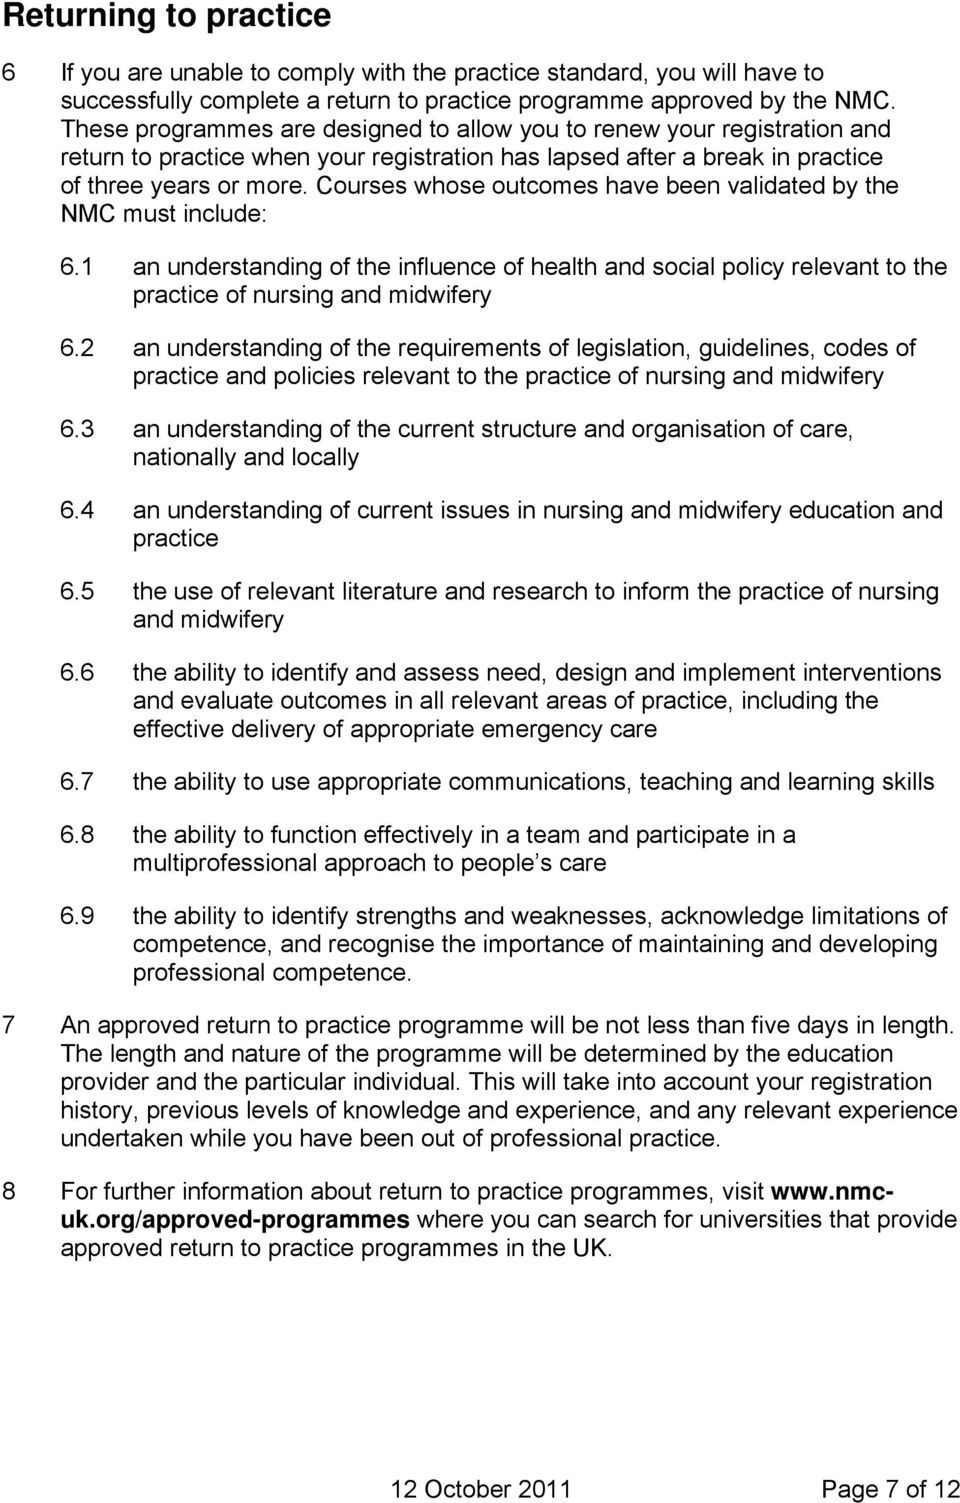 Courses whose outcomes have been validated by the NMC must include: 6.1 an understanding of the influence of health and social policy relevant to the practice of nursing and midwifery 6.